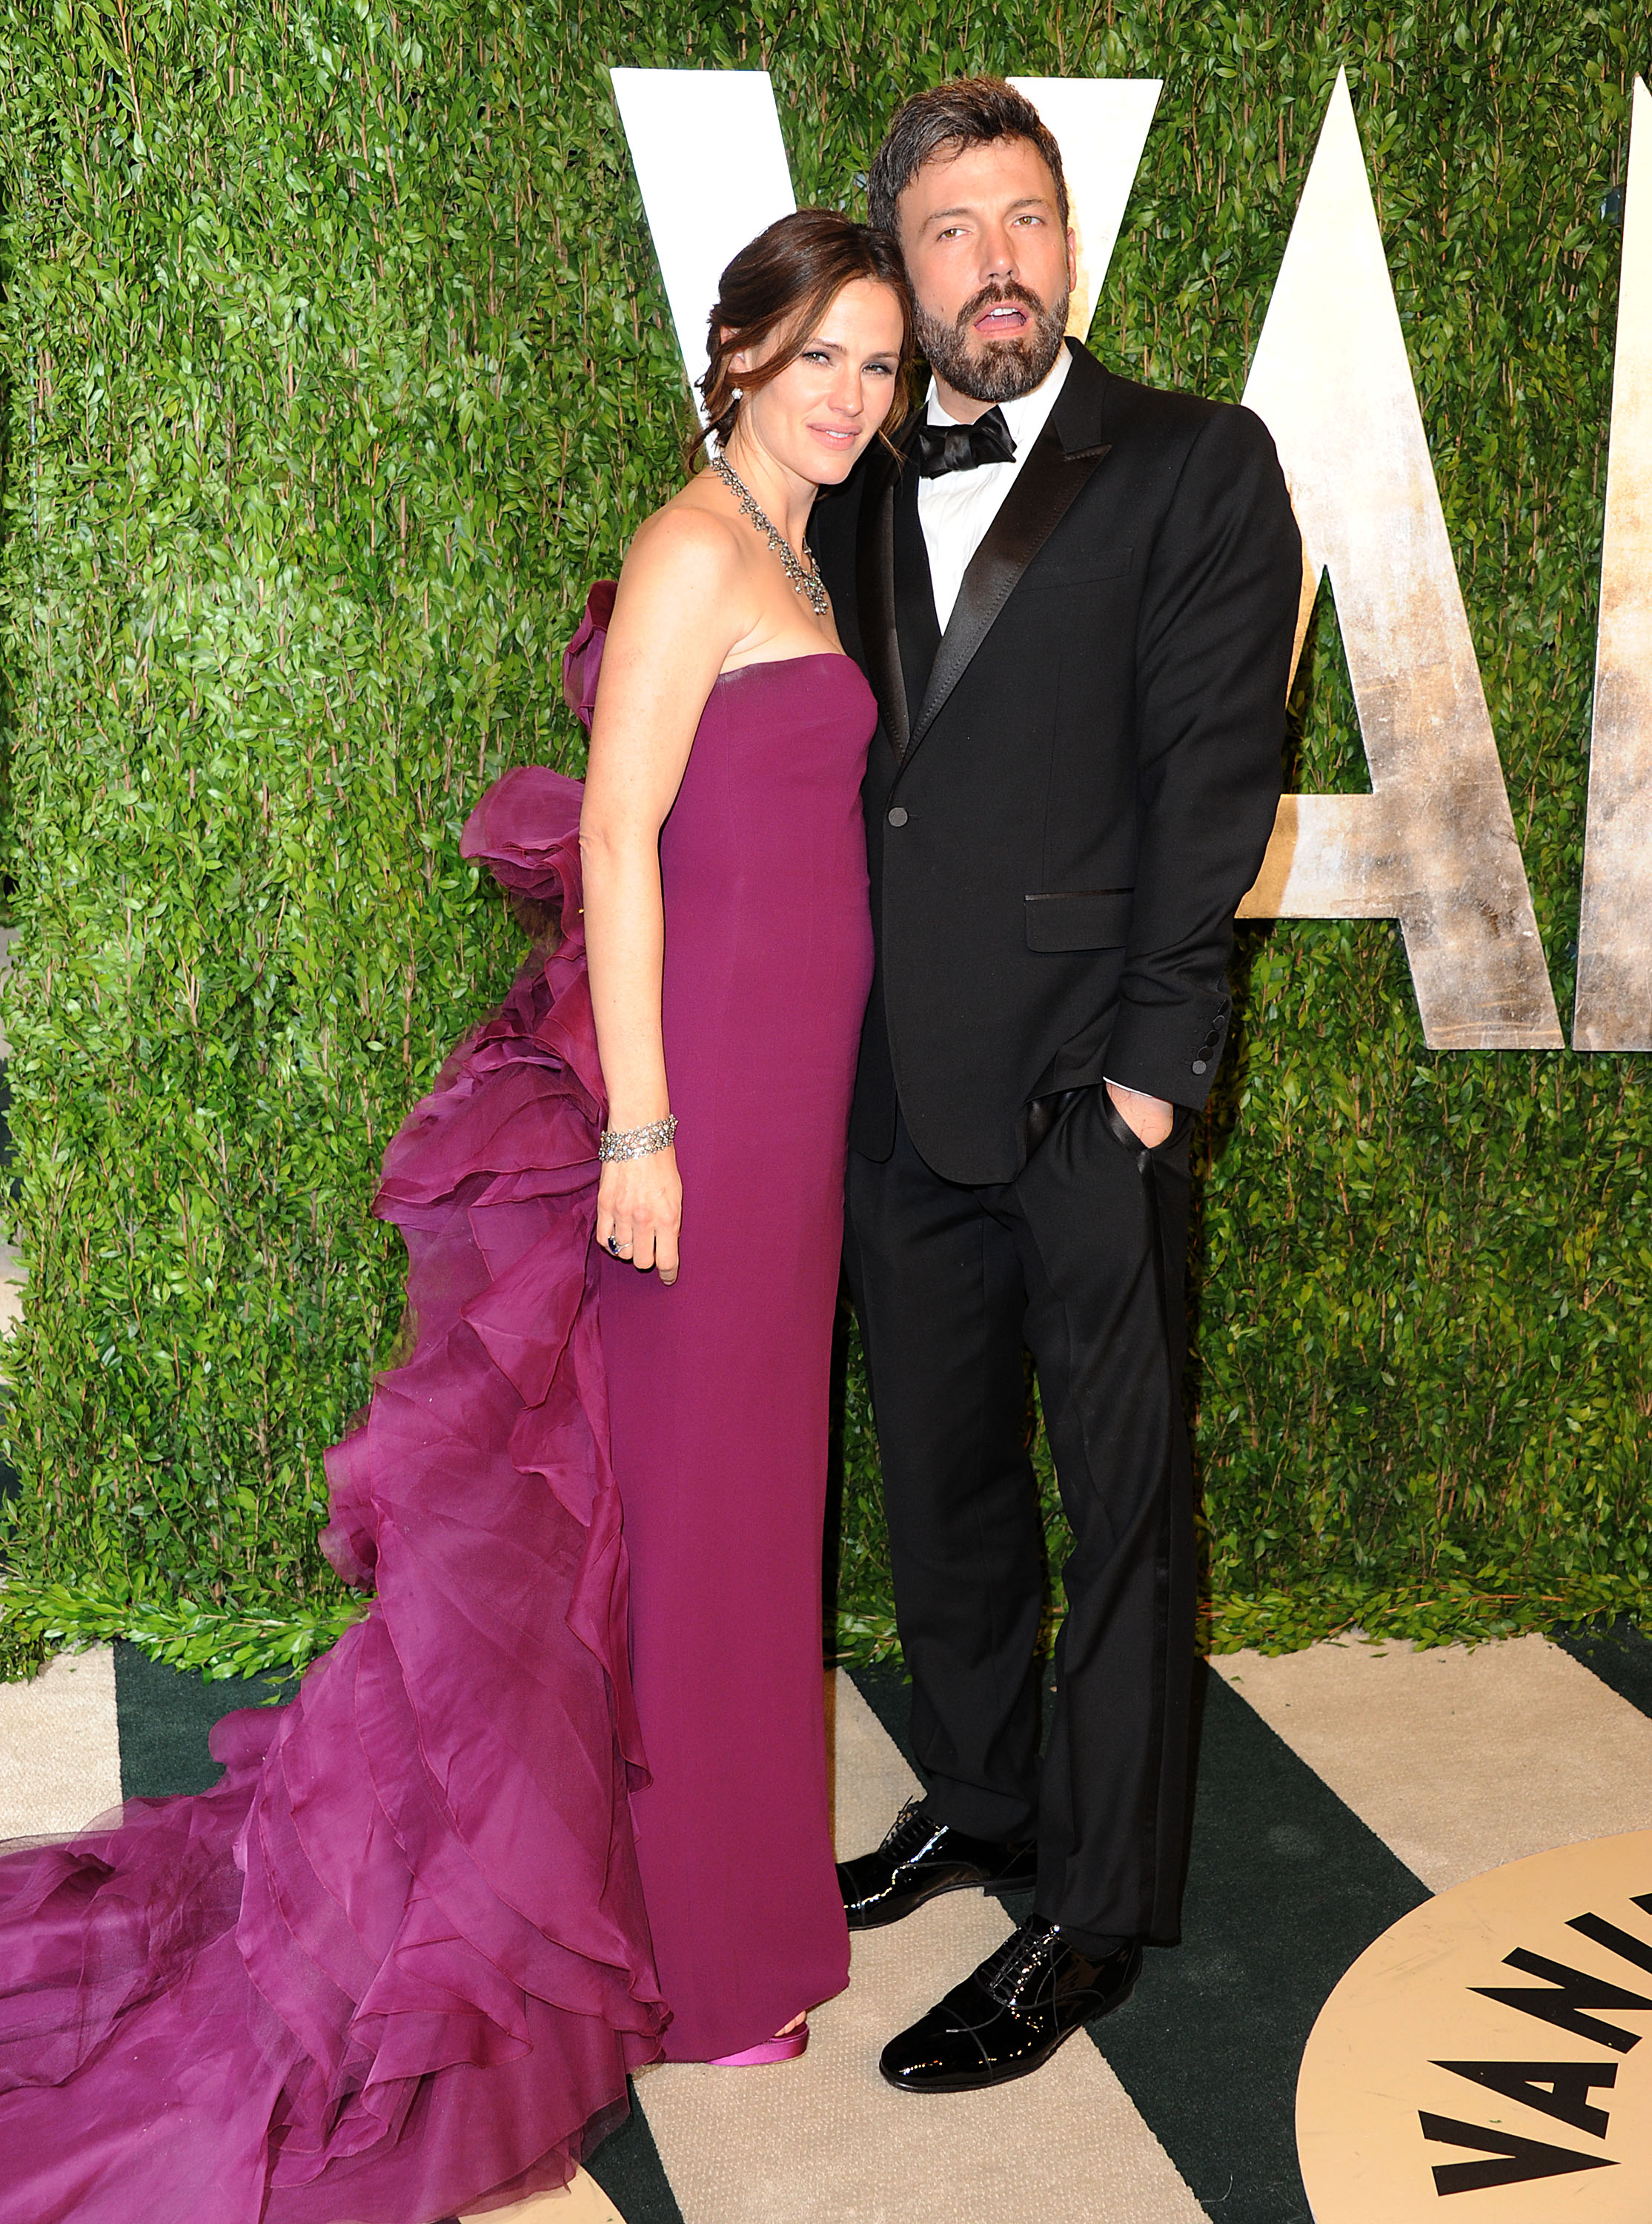 Jennifer Garner cozied up to Ben Affleck on the red carpet.